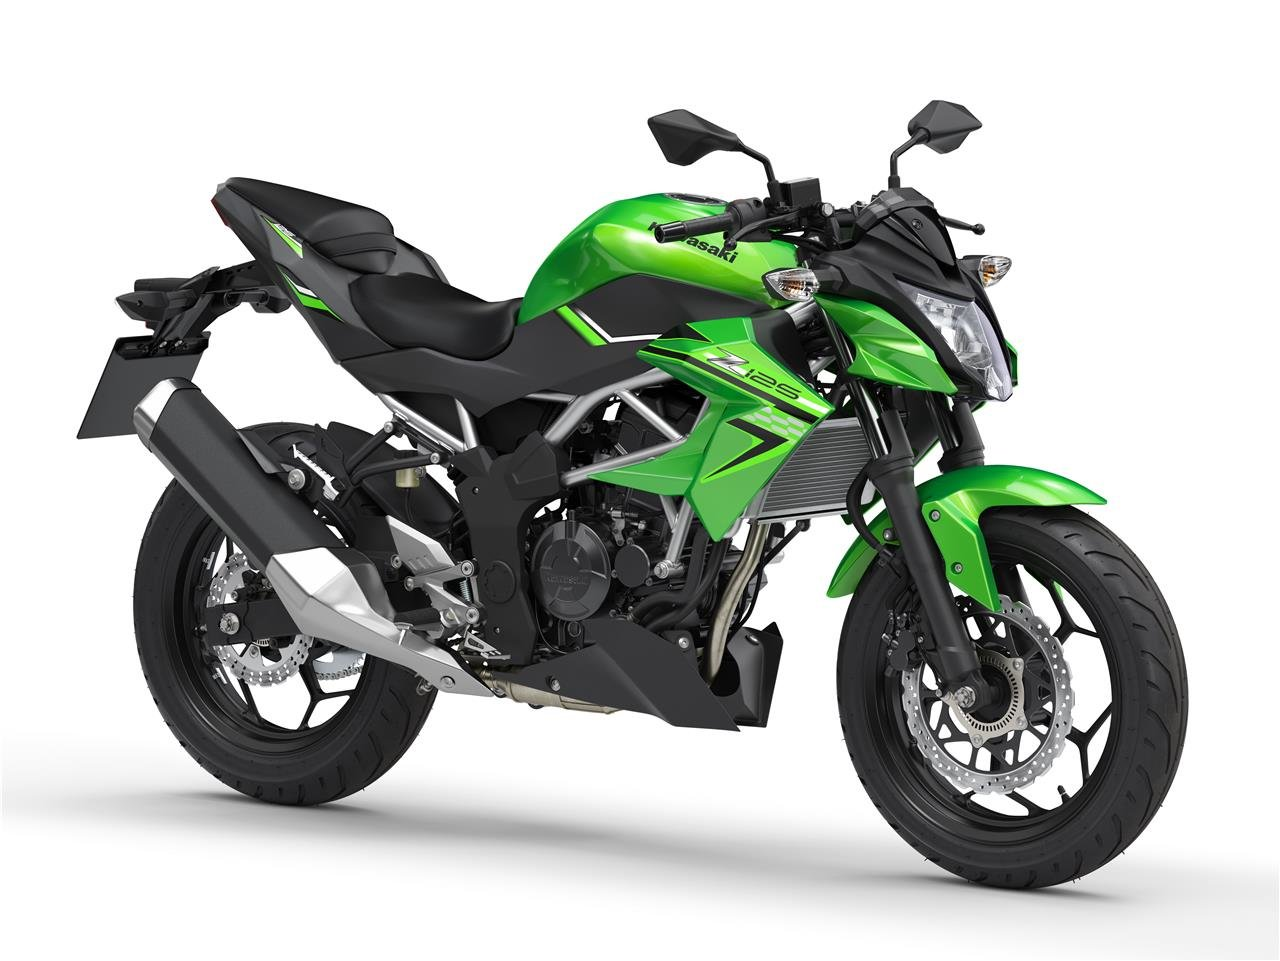 New 2021 Kawasaki Z 125 ABS Green For Sale (picture 1 of 6)